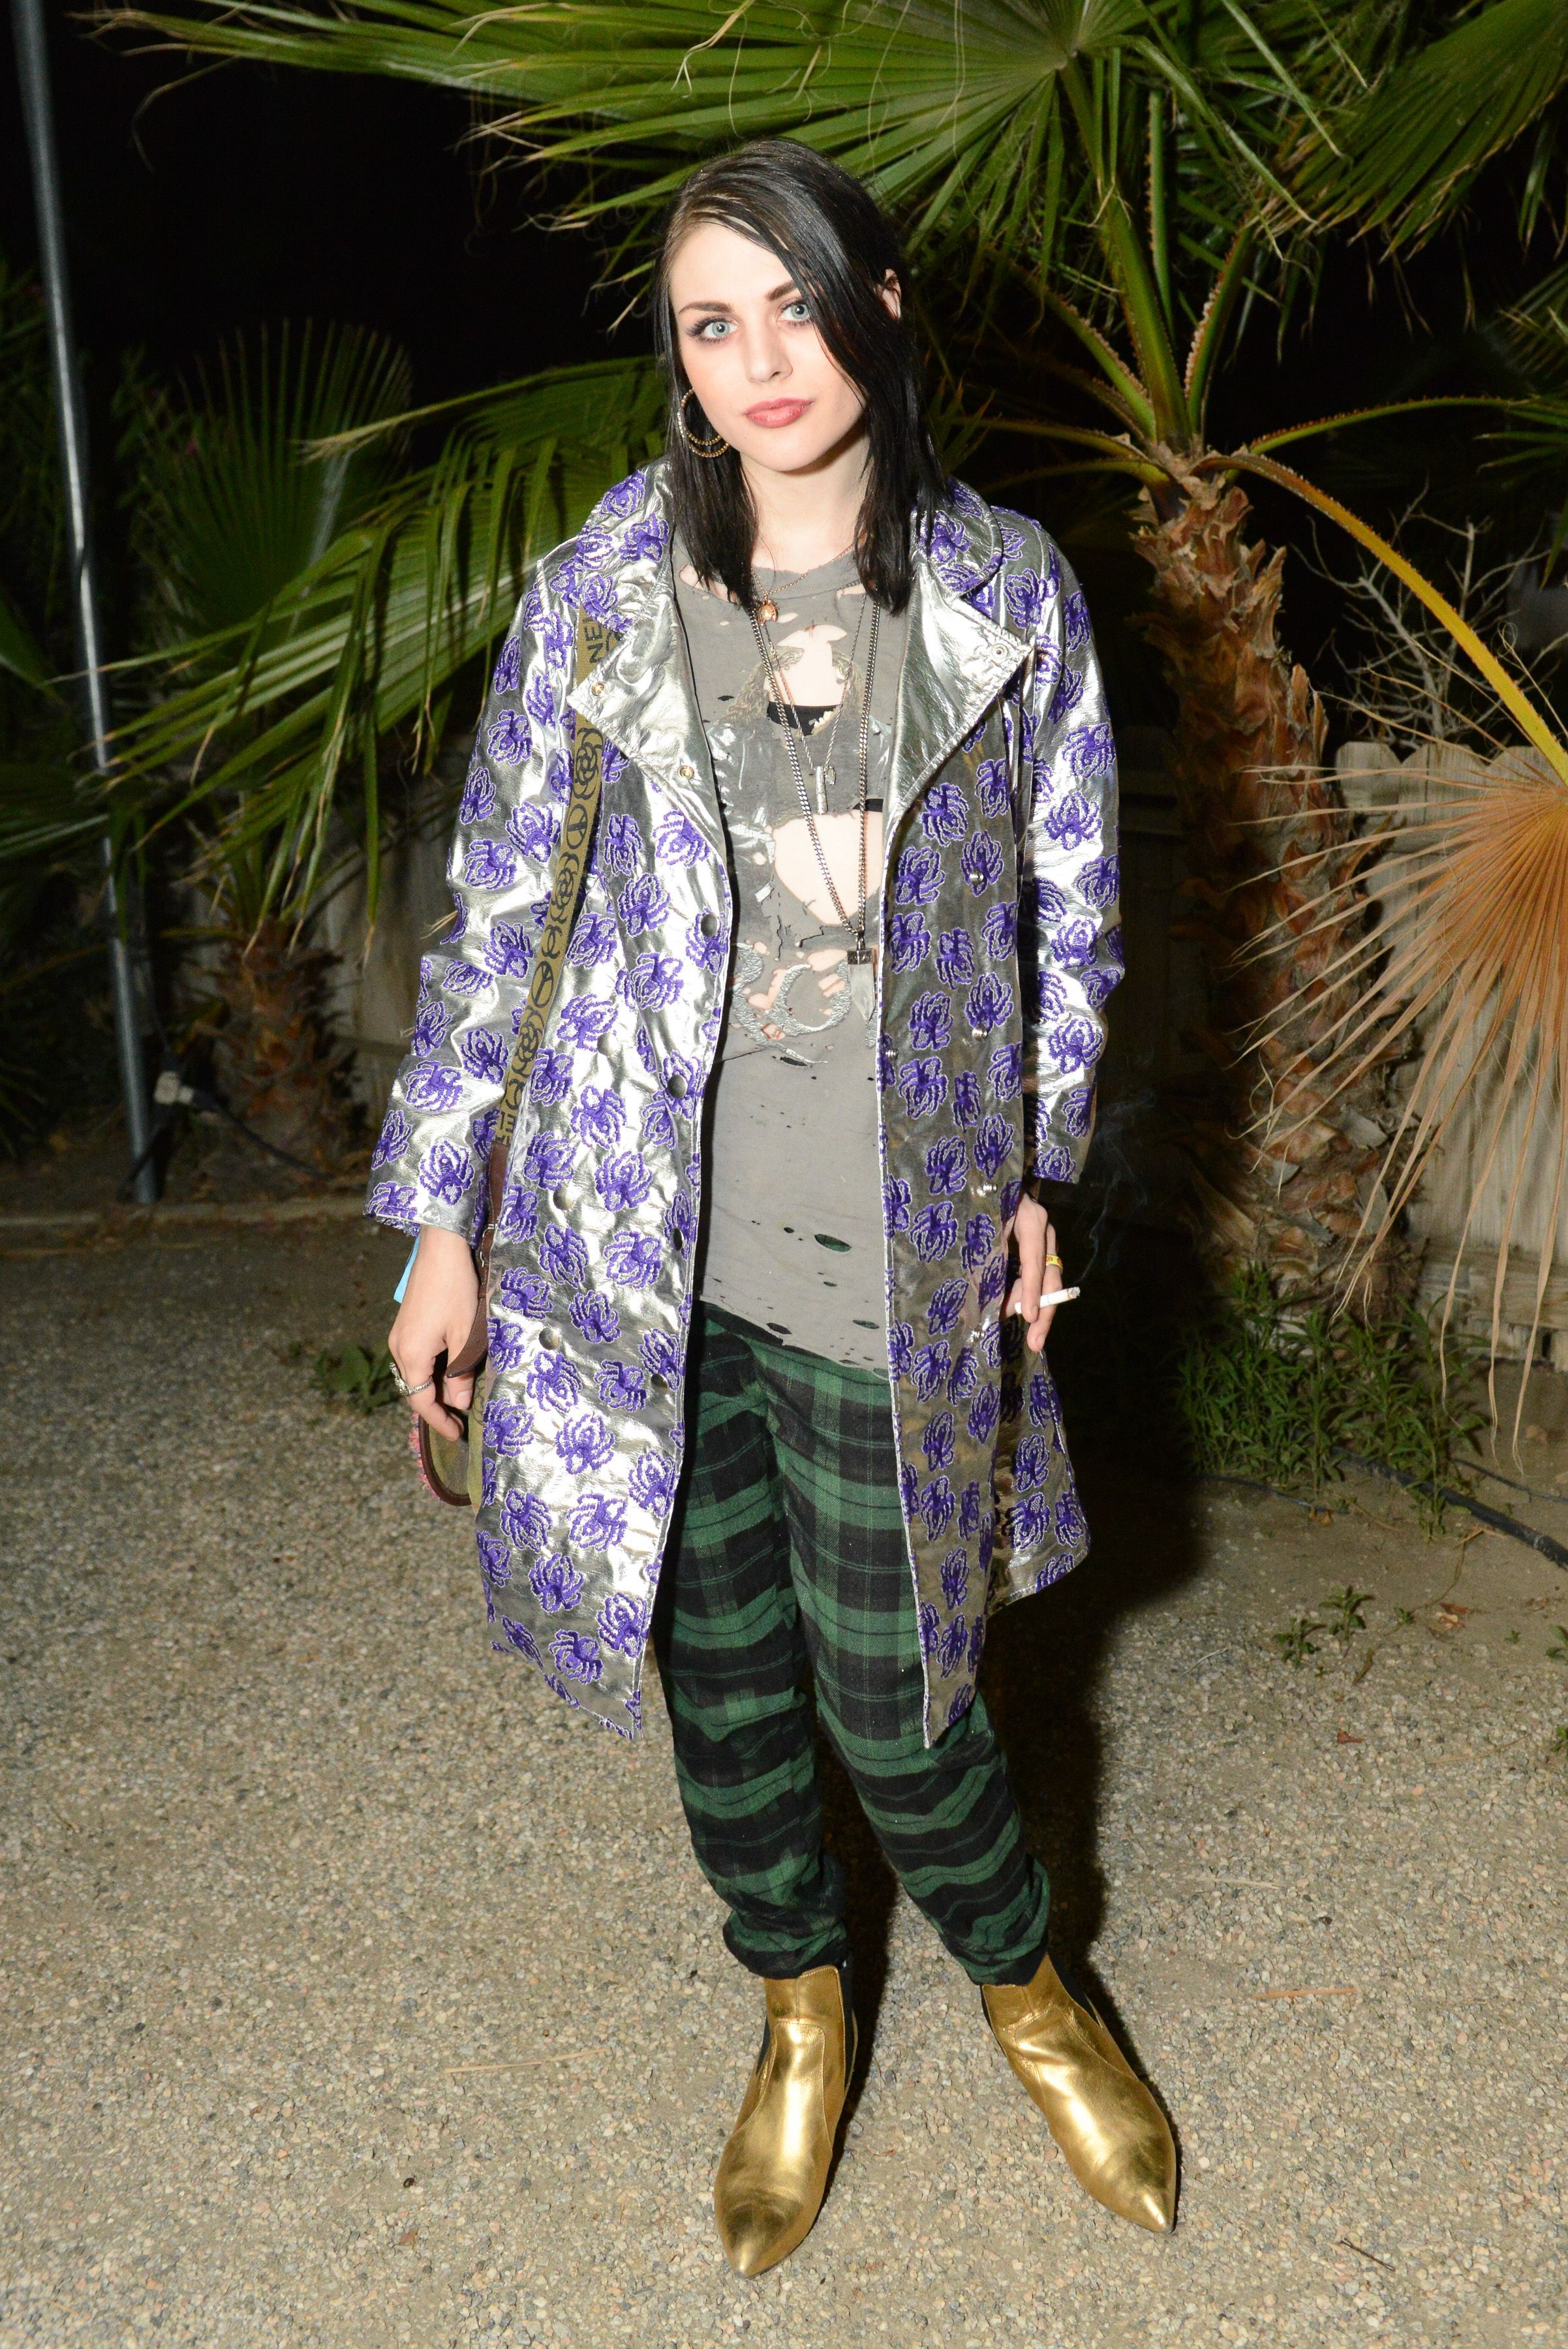 Frances Bean Cobain shares moving note for Kurt Cobain on his birthday